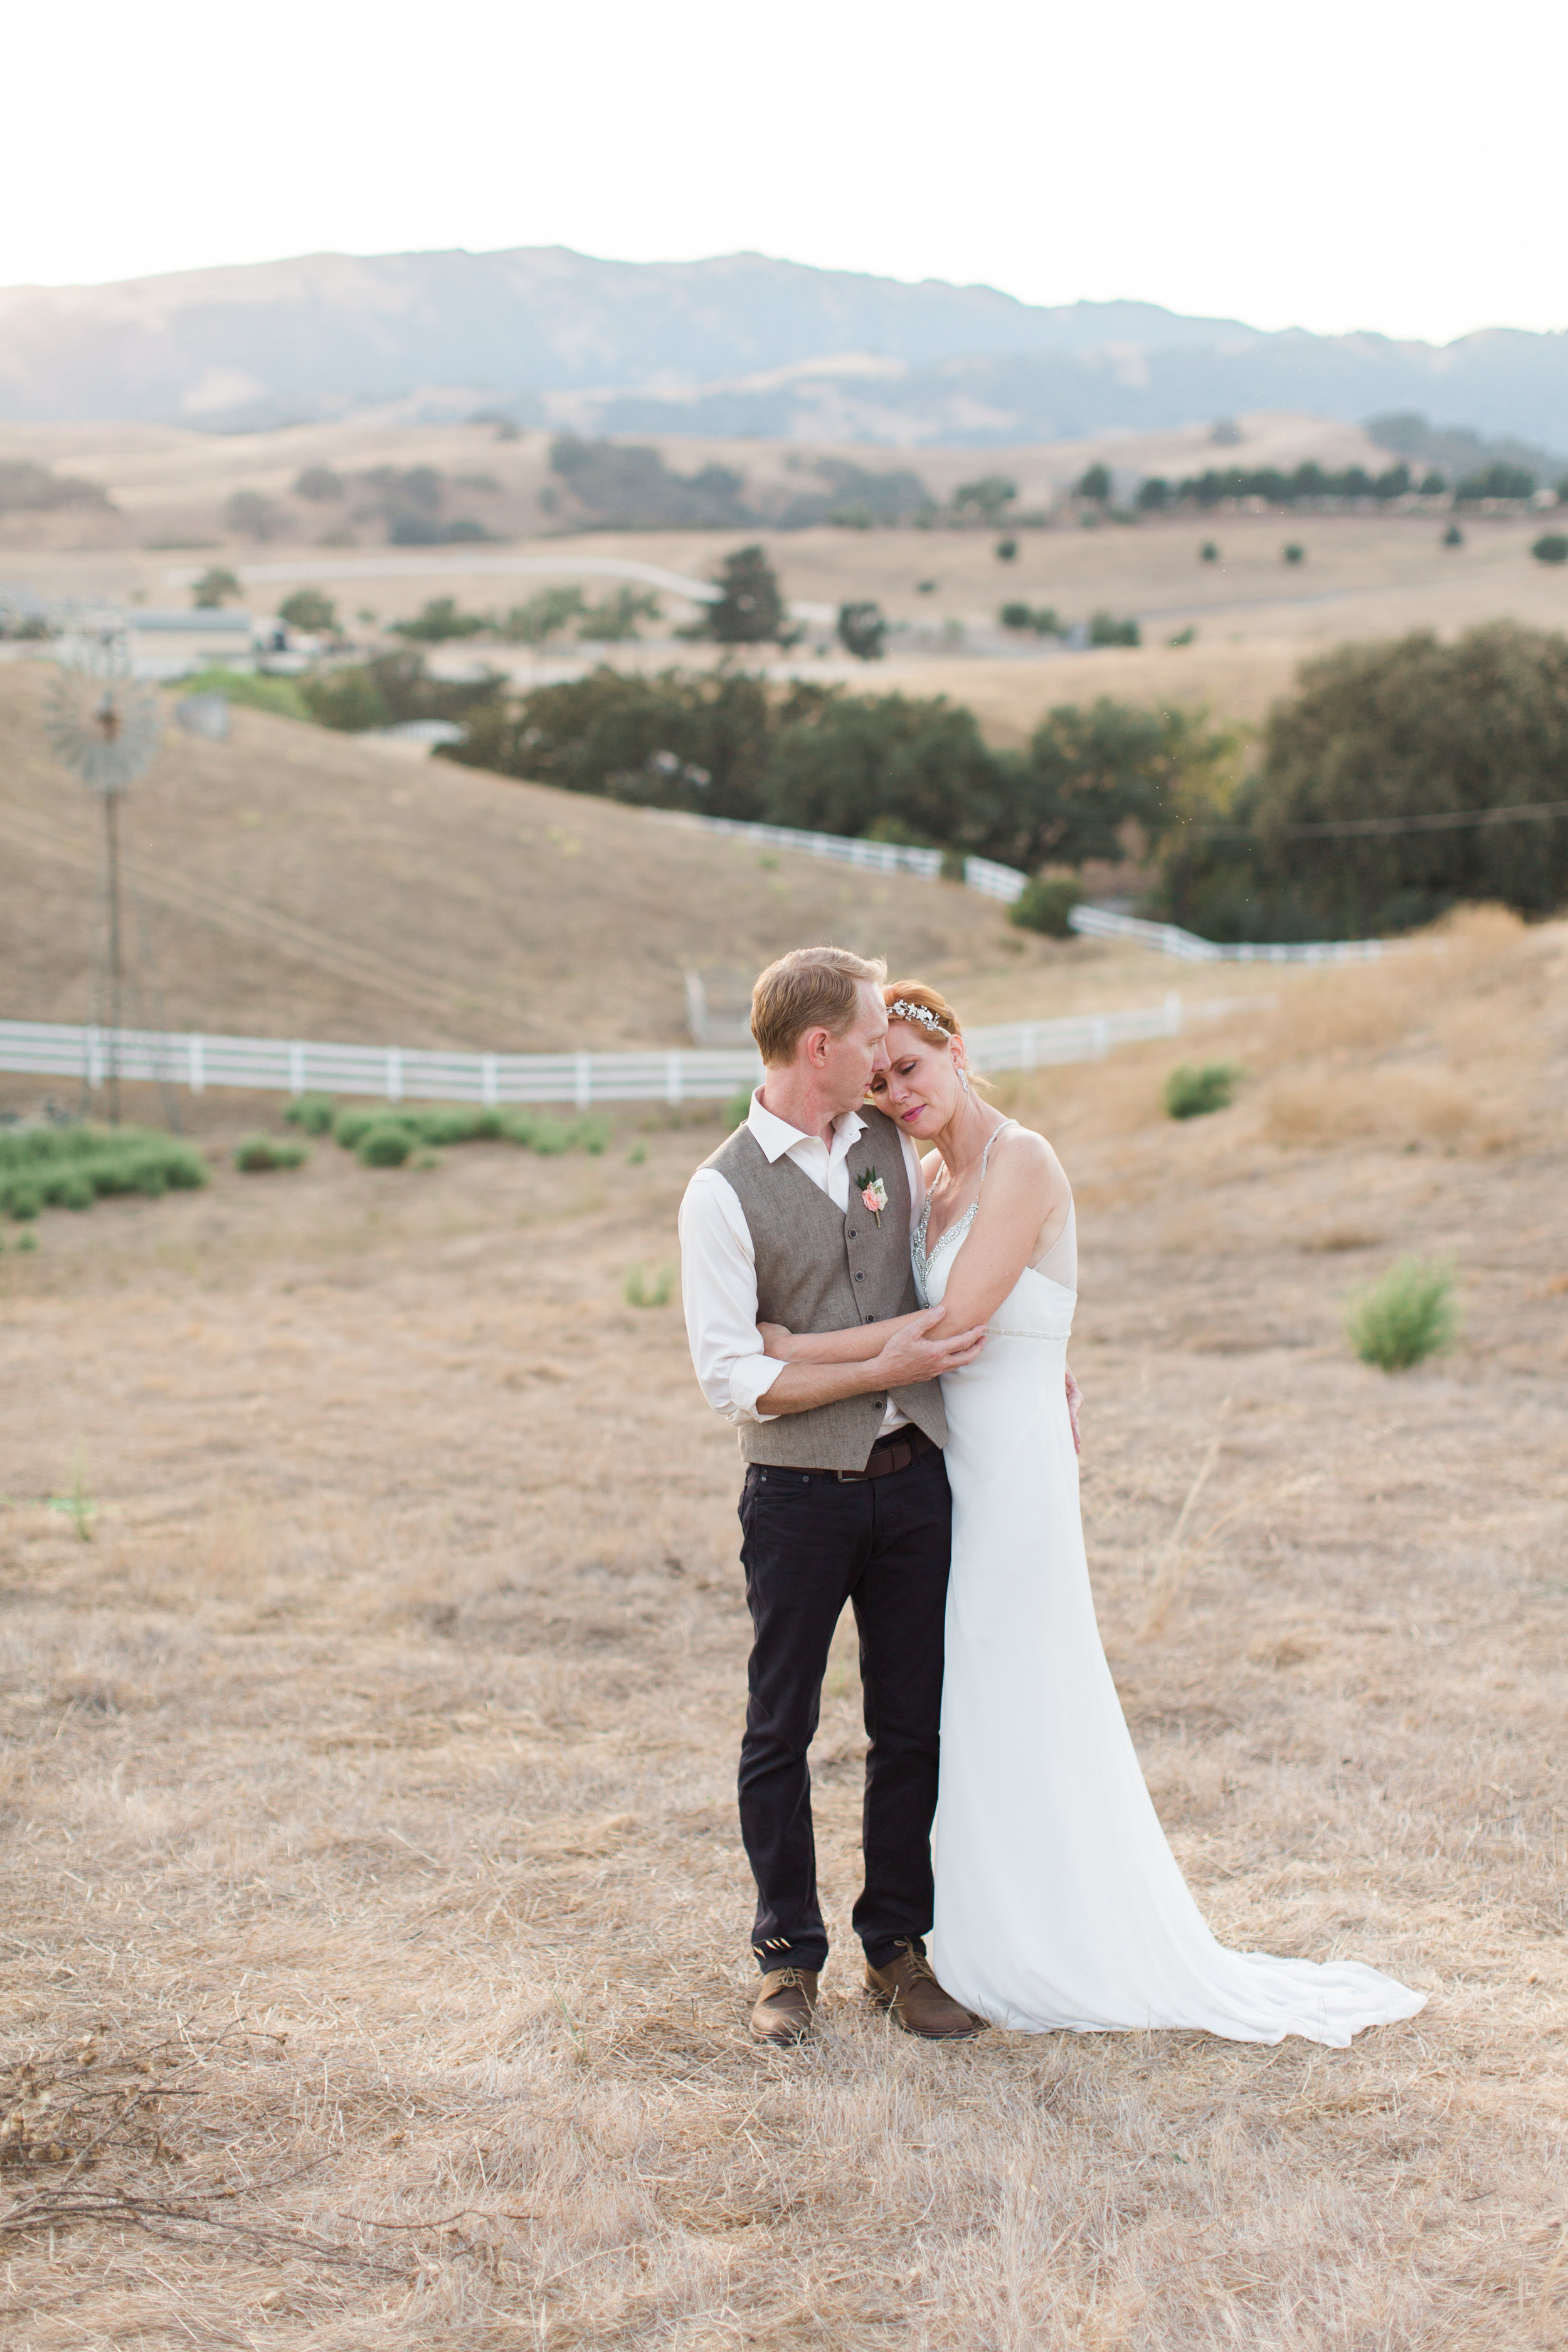 intimate-backyard-wedding-sonoma-california-27.jpg